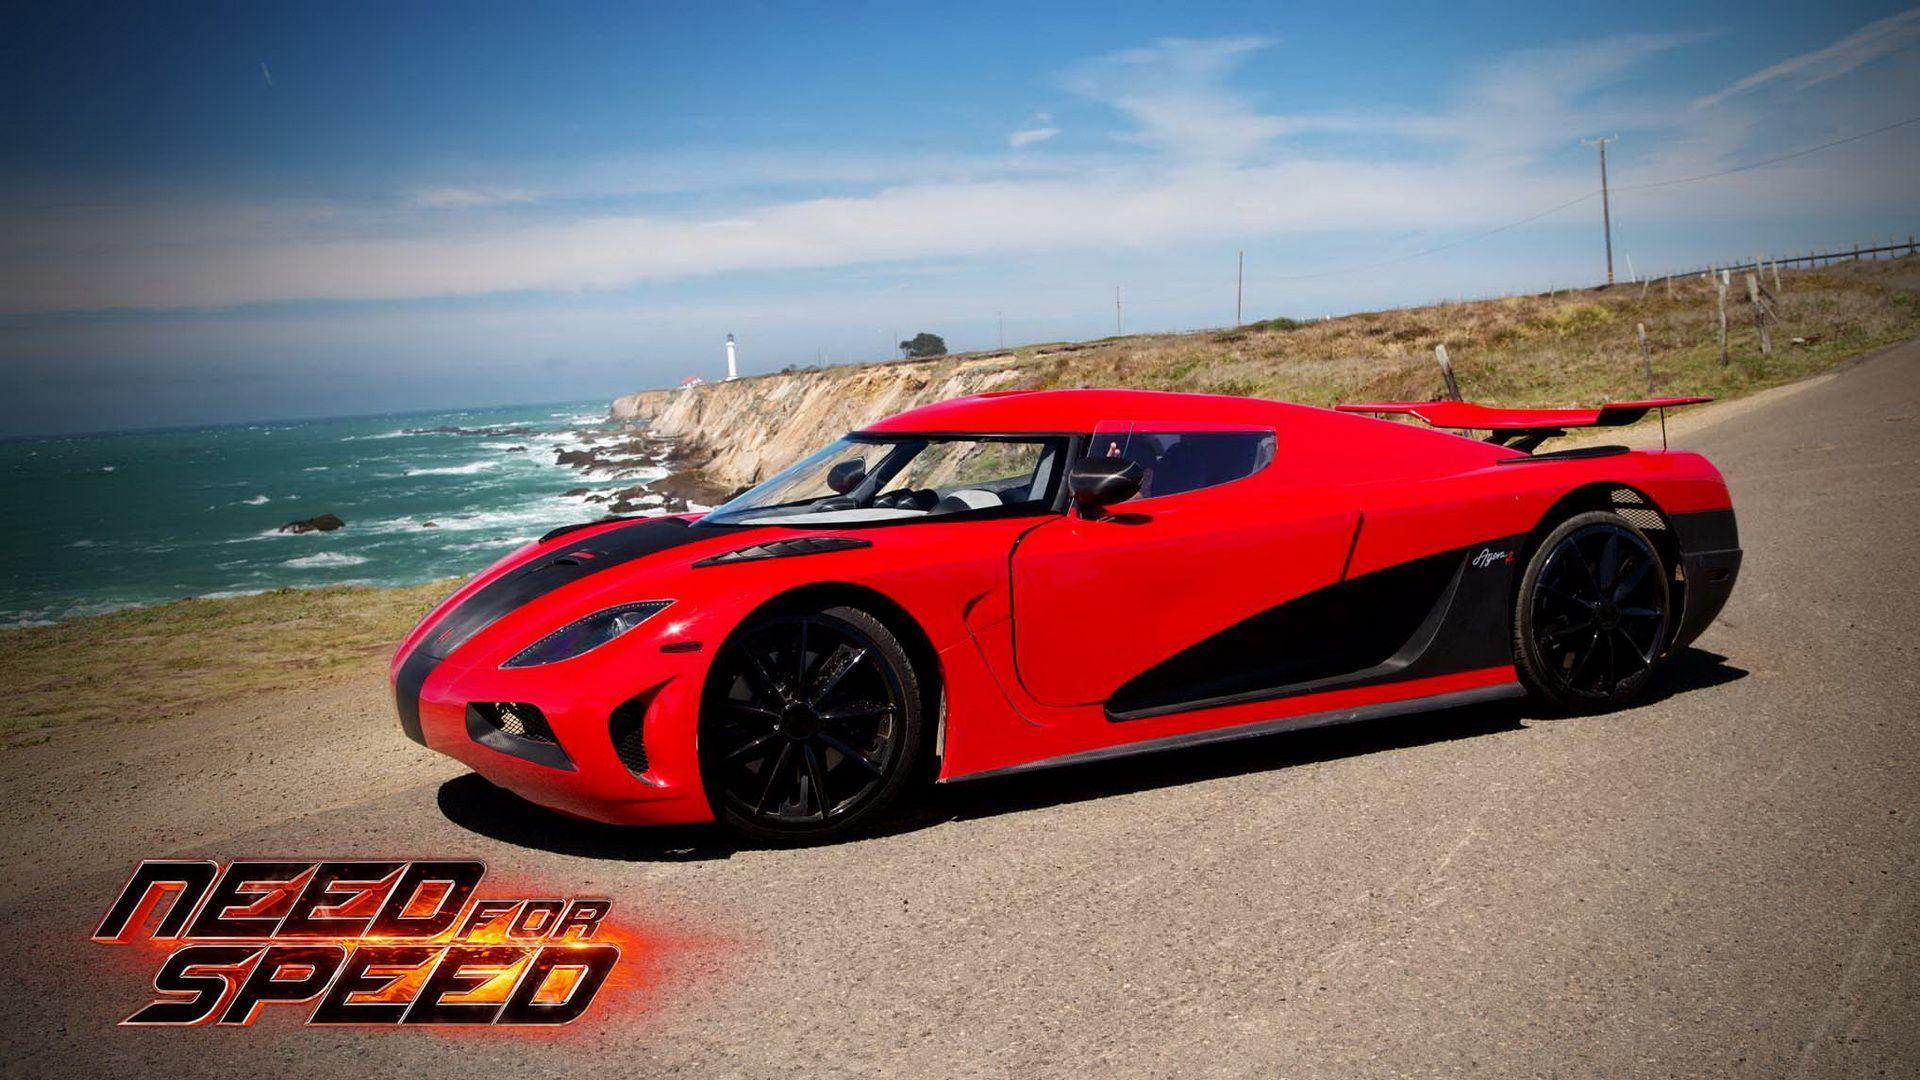 Wallpapers Need For Speed Red Car Koenigsegg Agera R Movie Cars ...